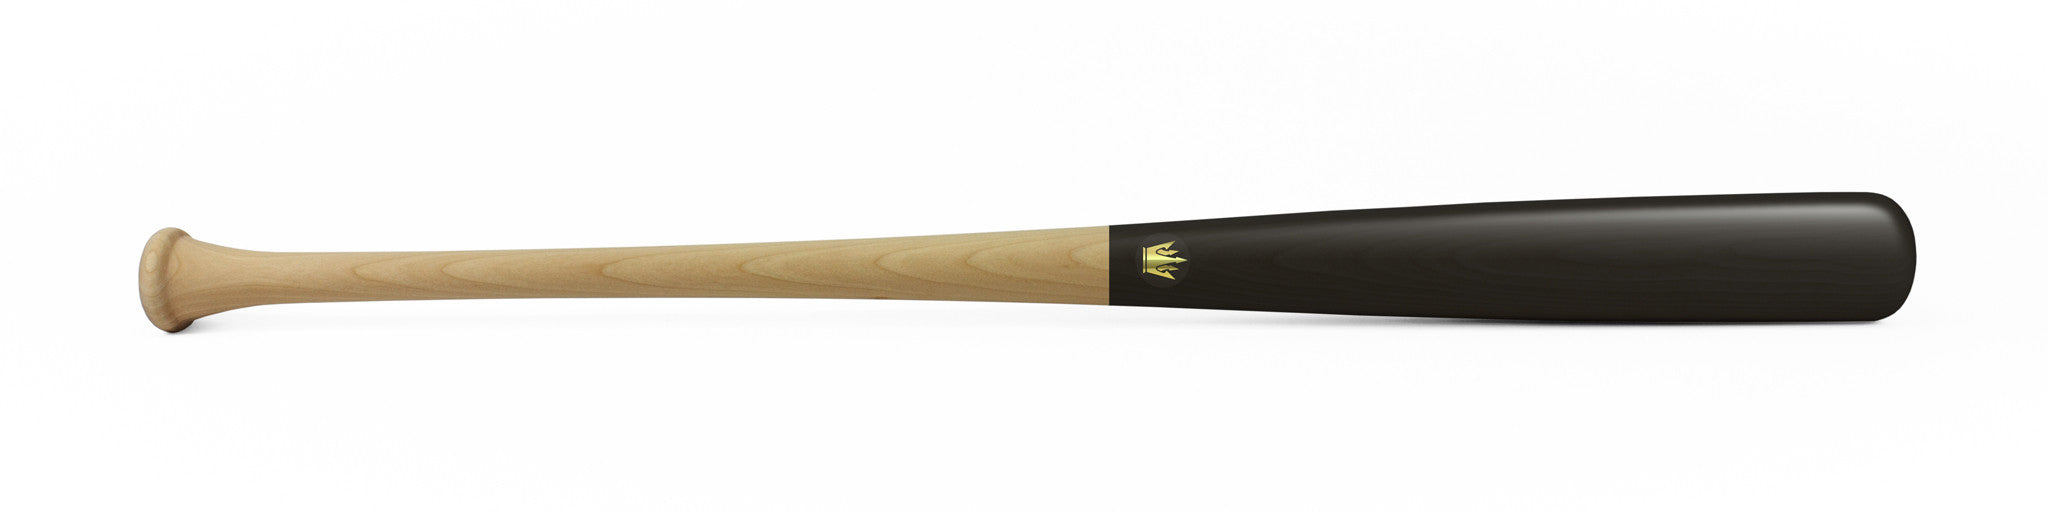 Wood bat - Birch model 271 Black Standard - 12